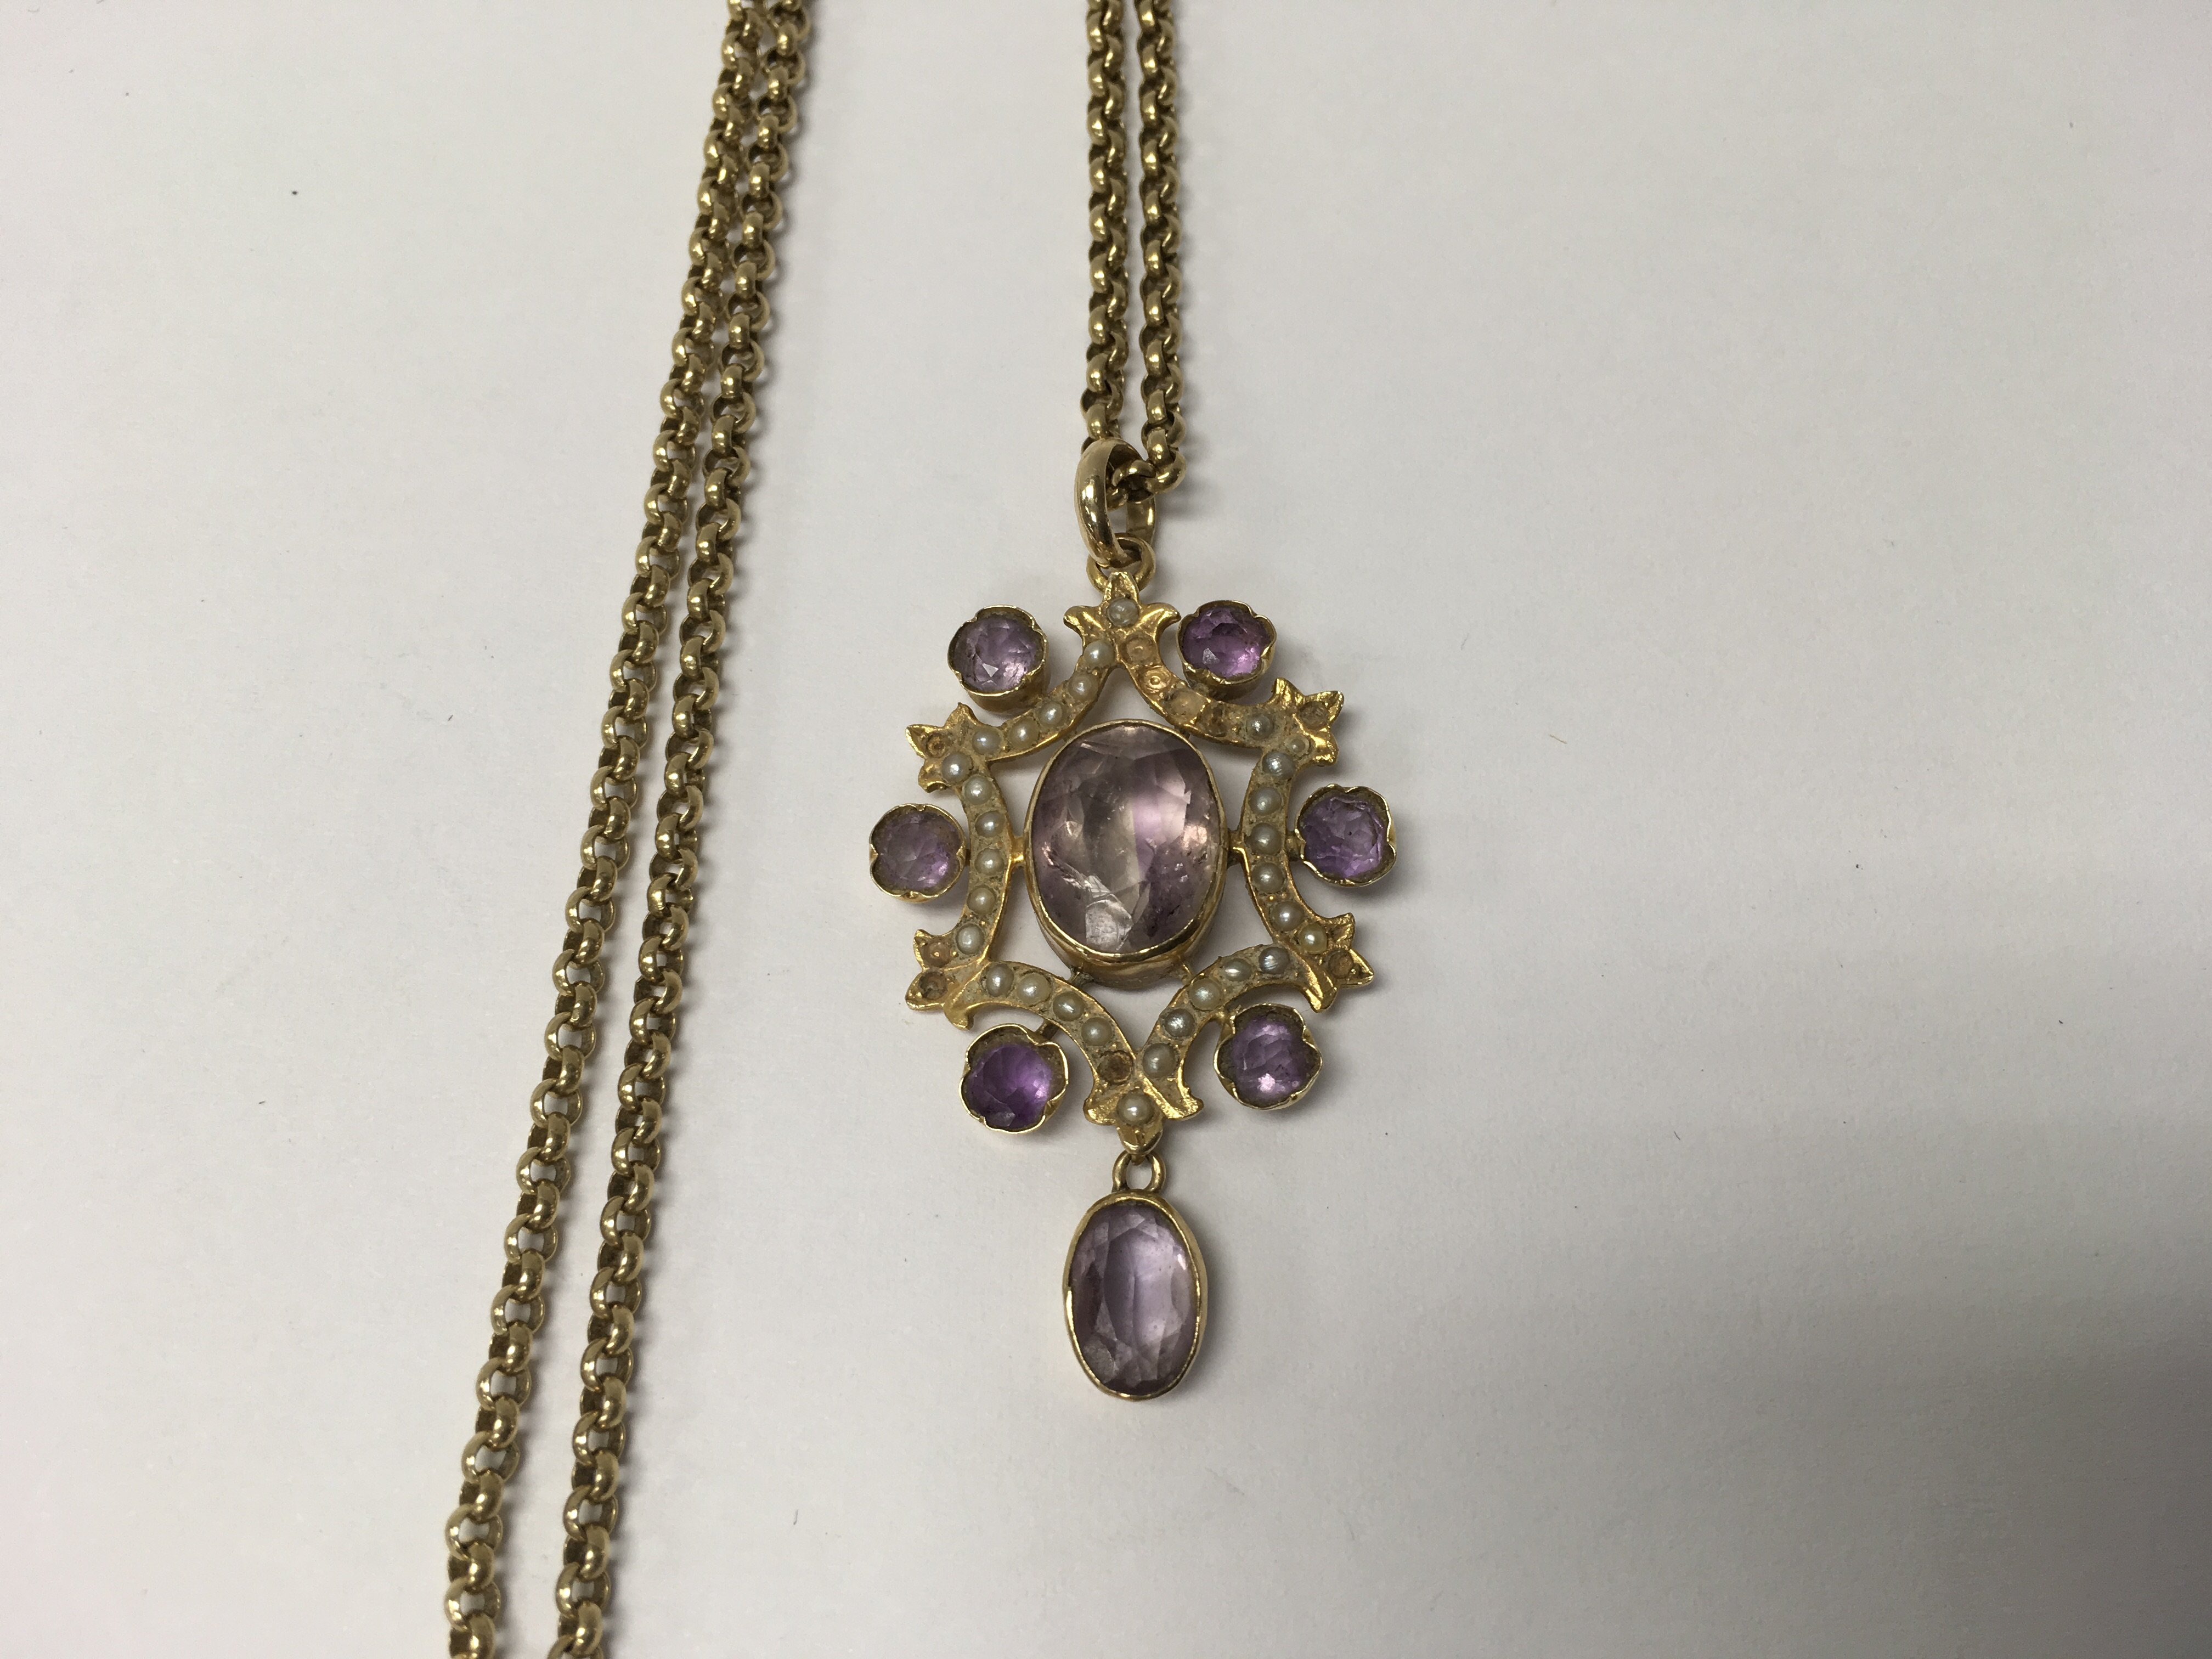 Lot 51 - A Edwardian 15 ct gold pendant inset with amethyst